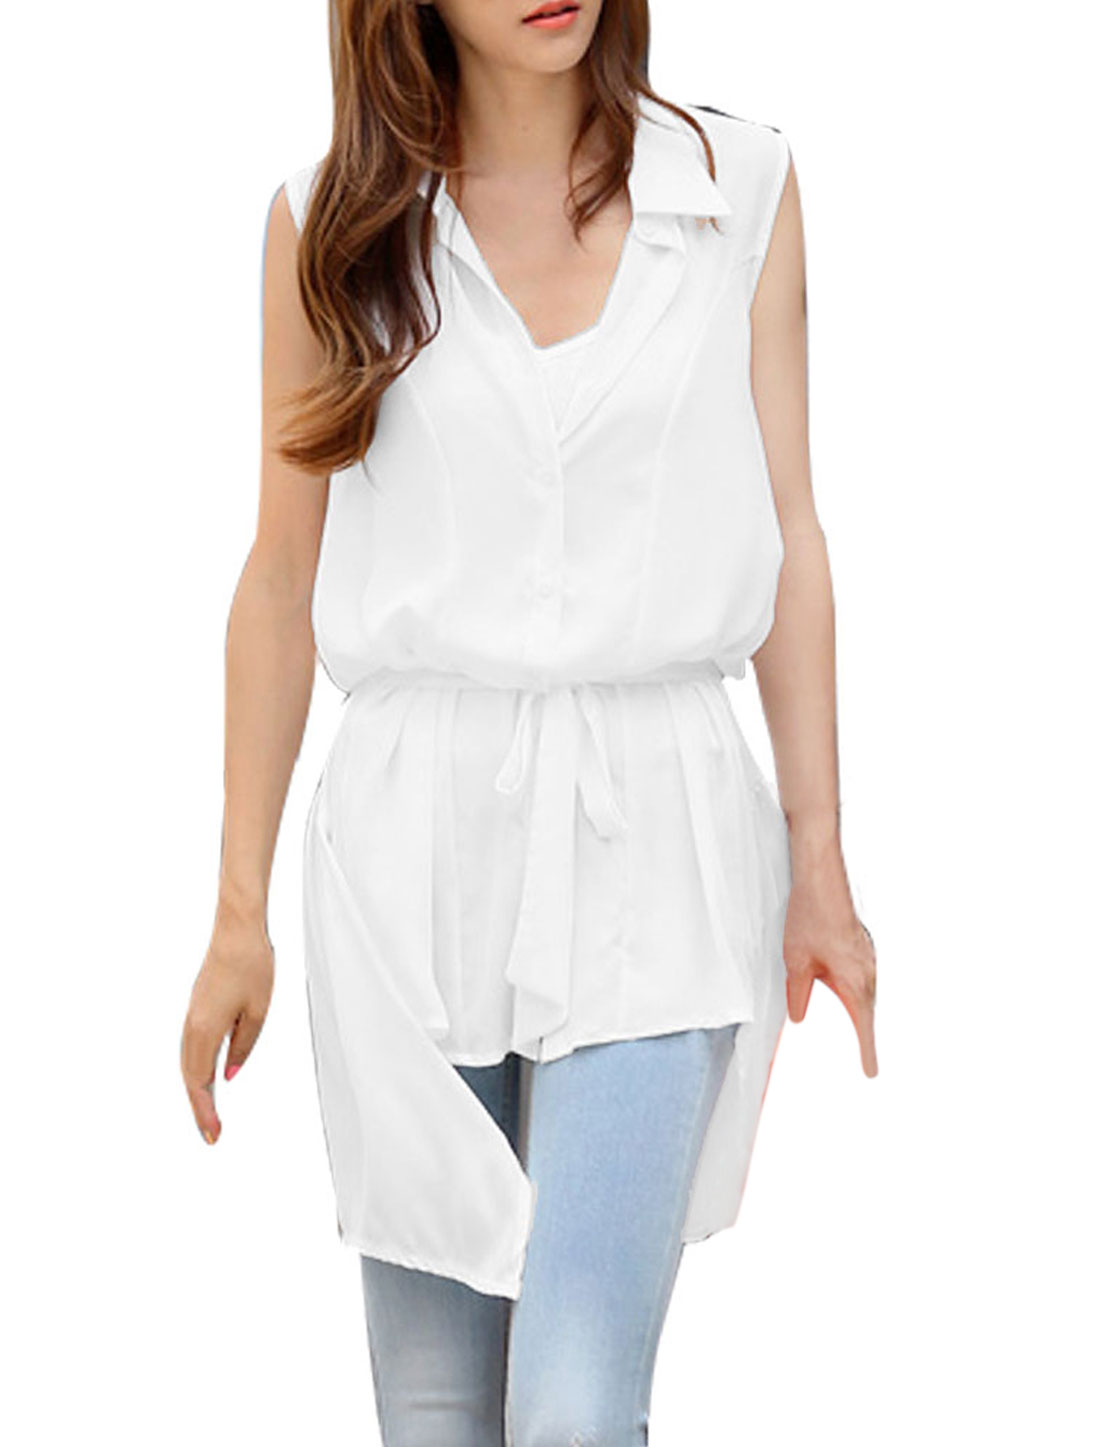 Women Point Collar Drawstring Waist Sleeveless Design Tunic Shirt M White